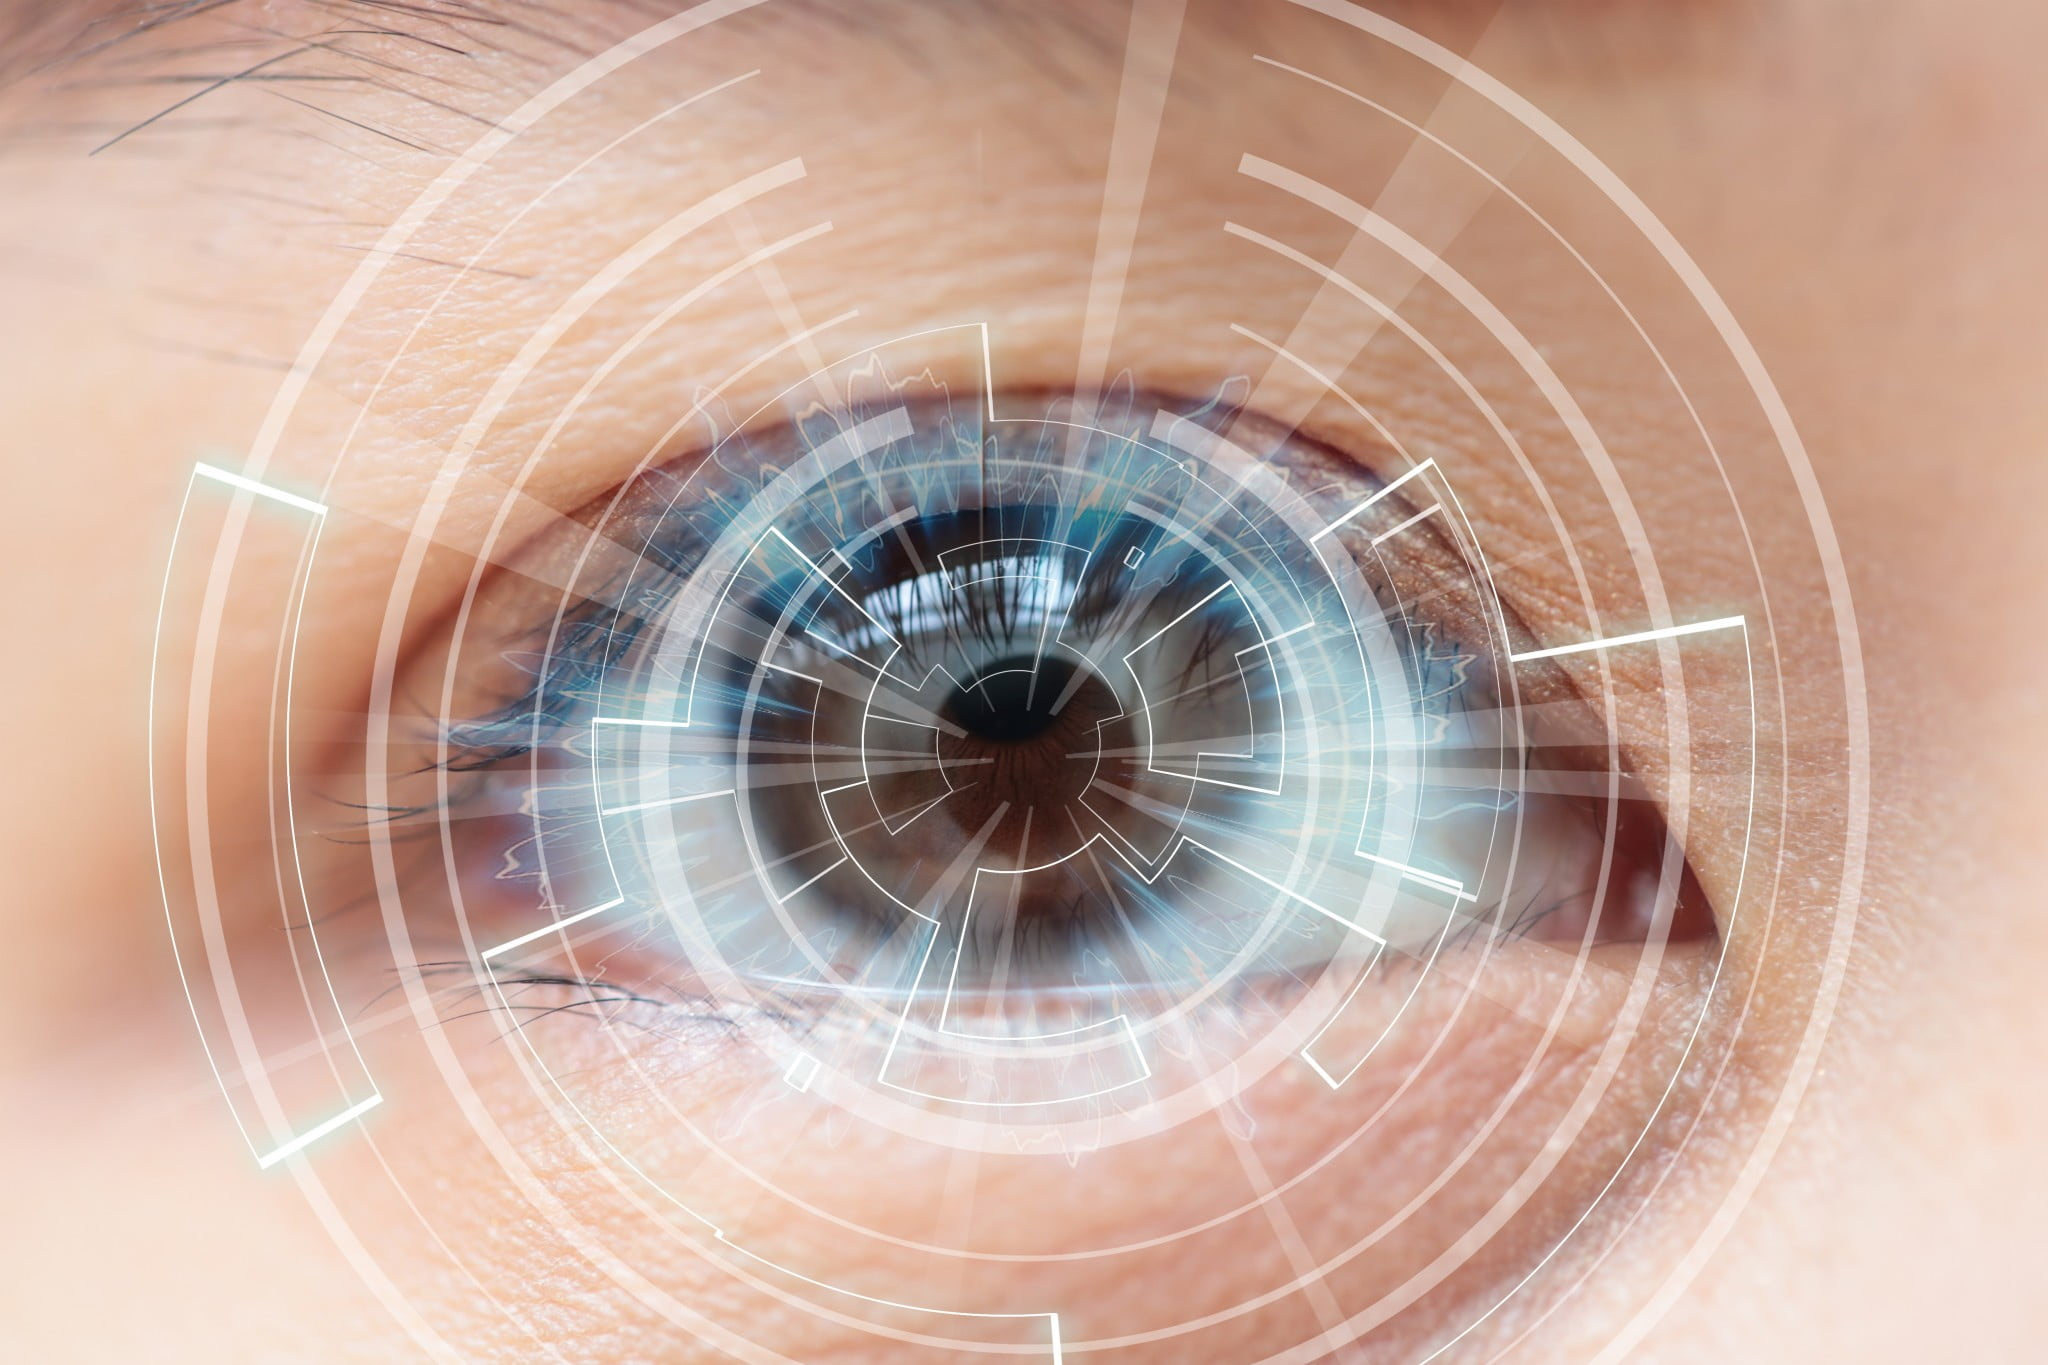 macular degeneration - closeup on eye with lots of high tech crosshairs